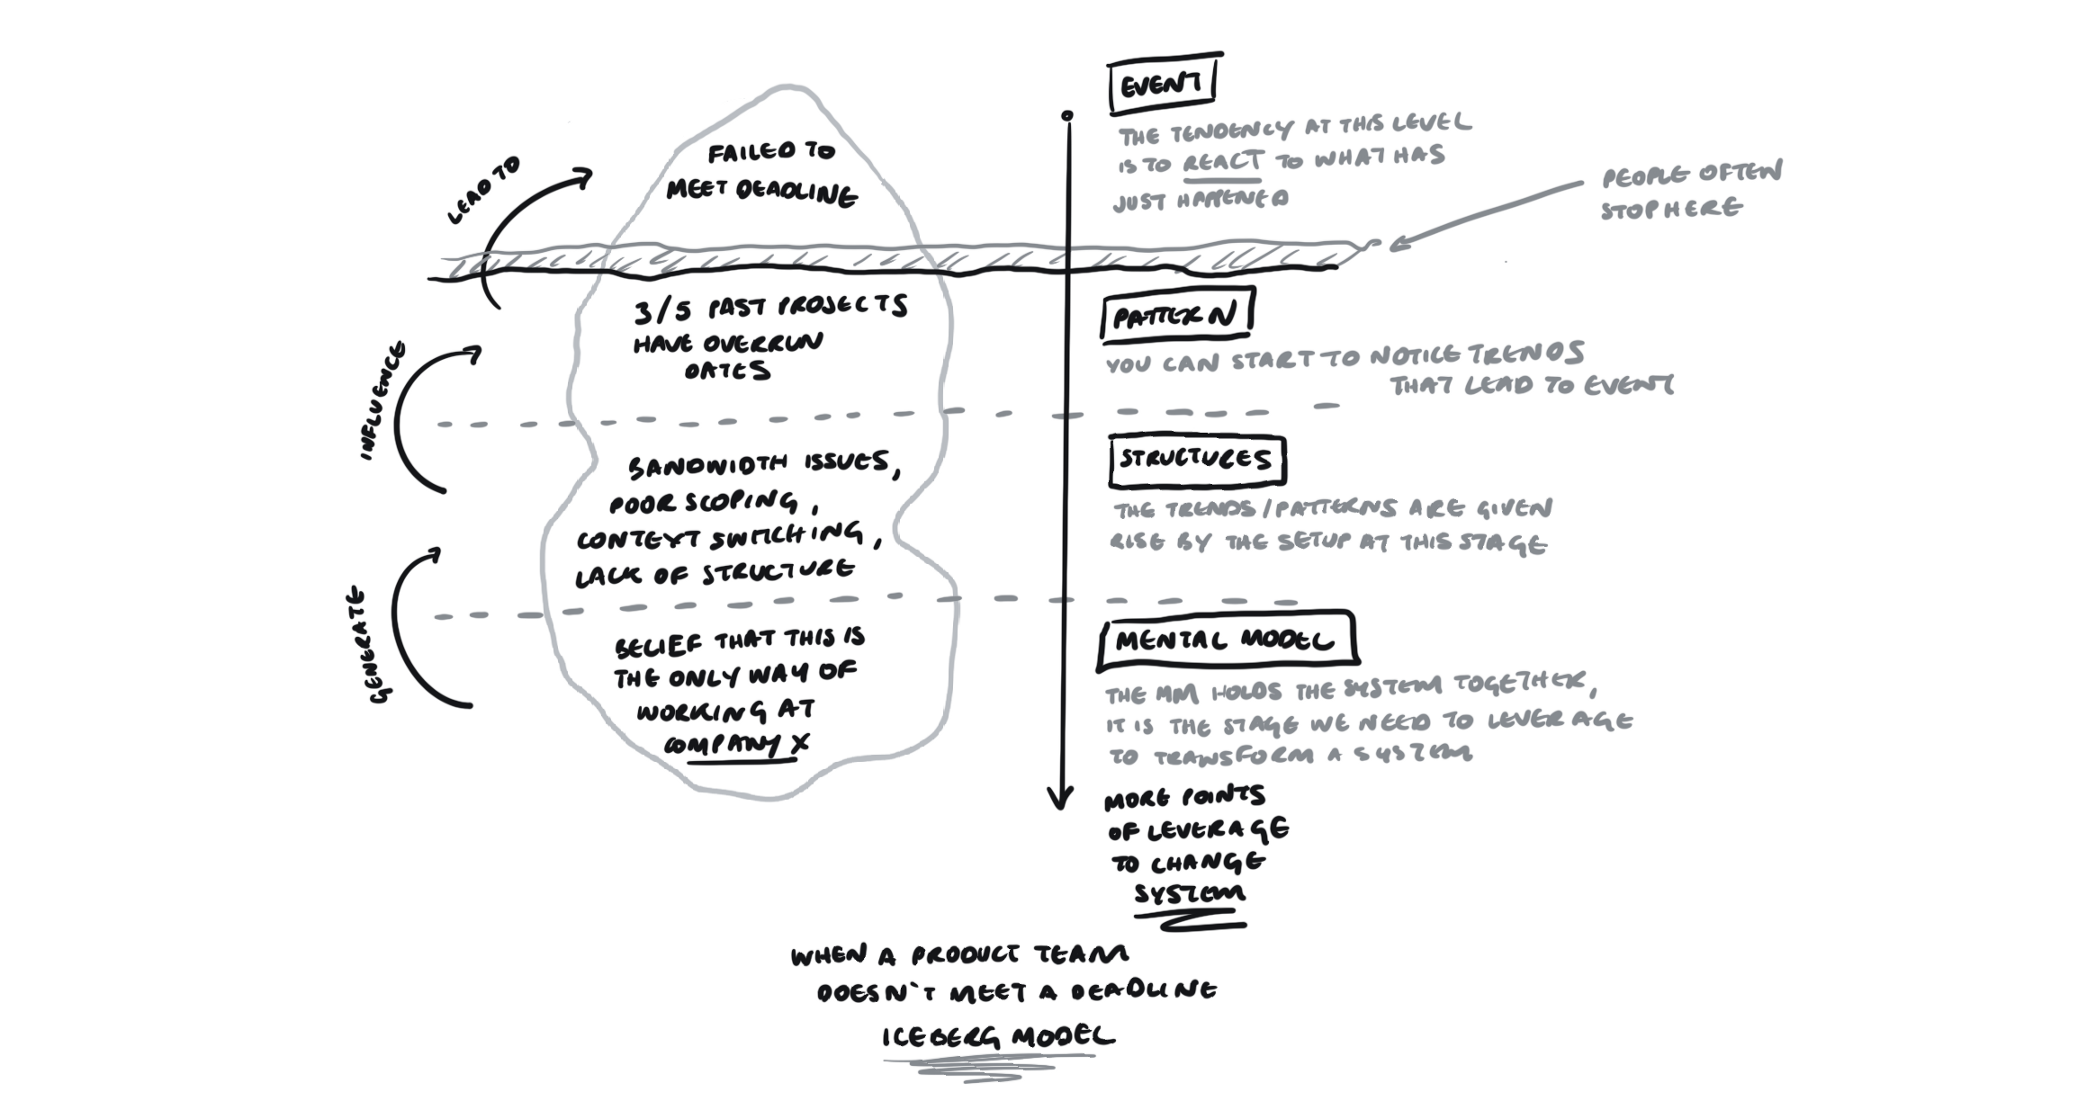 The Iceberg Model representing the Events, Patterns, Structures and Mental Models behind a product team missing a deadline.